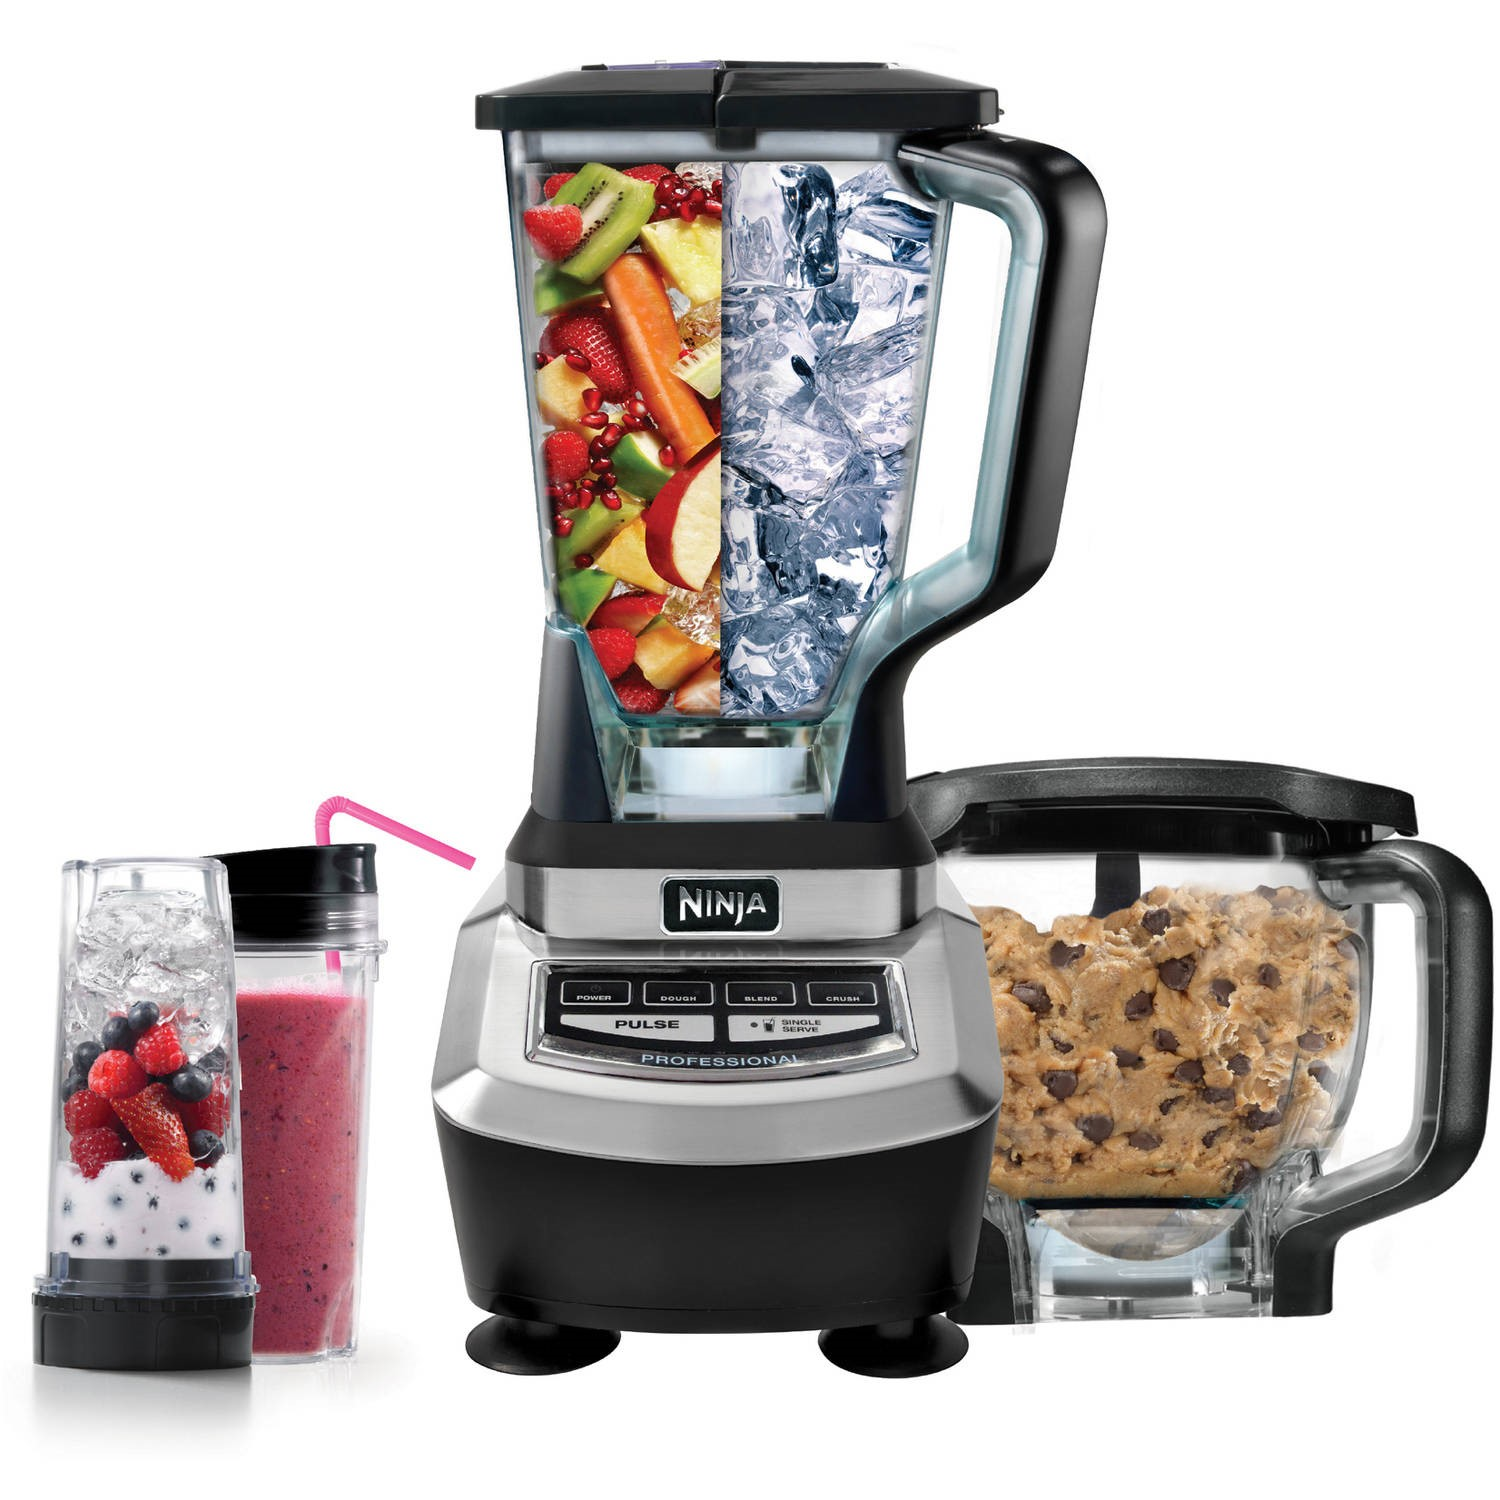 Ninja Supra Kitchen Blender System with Food Processor and